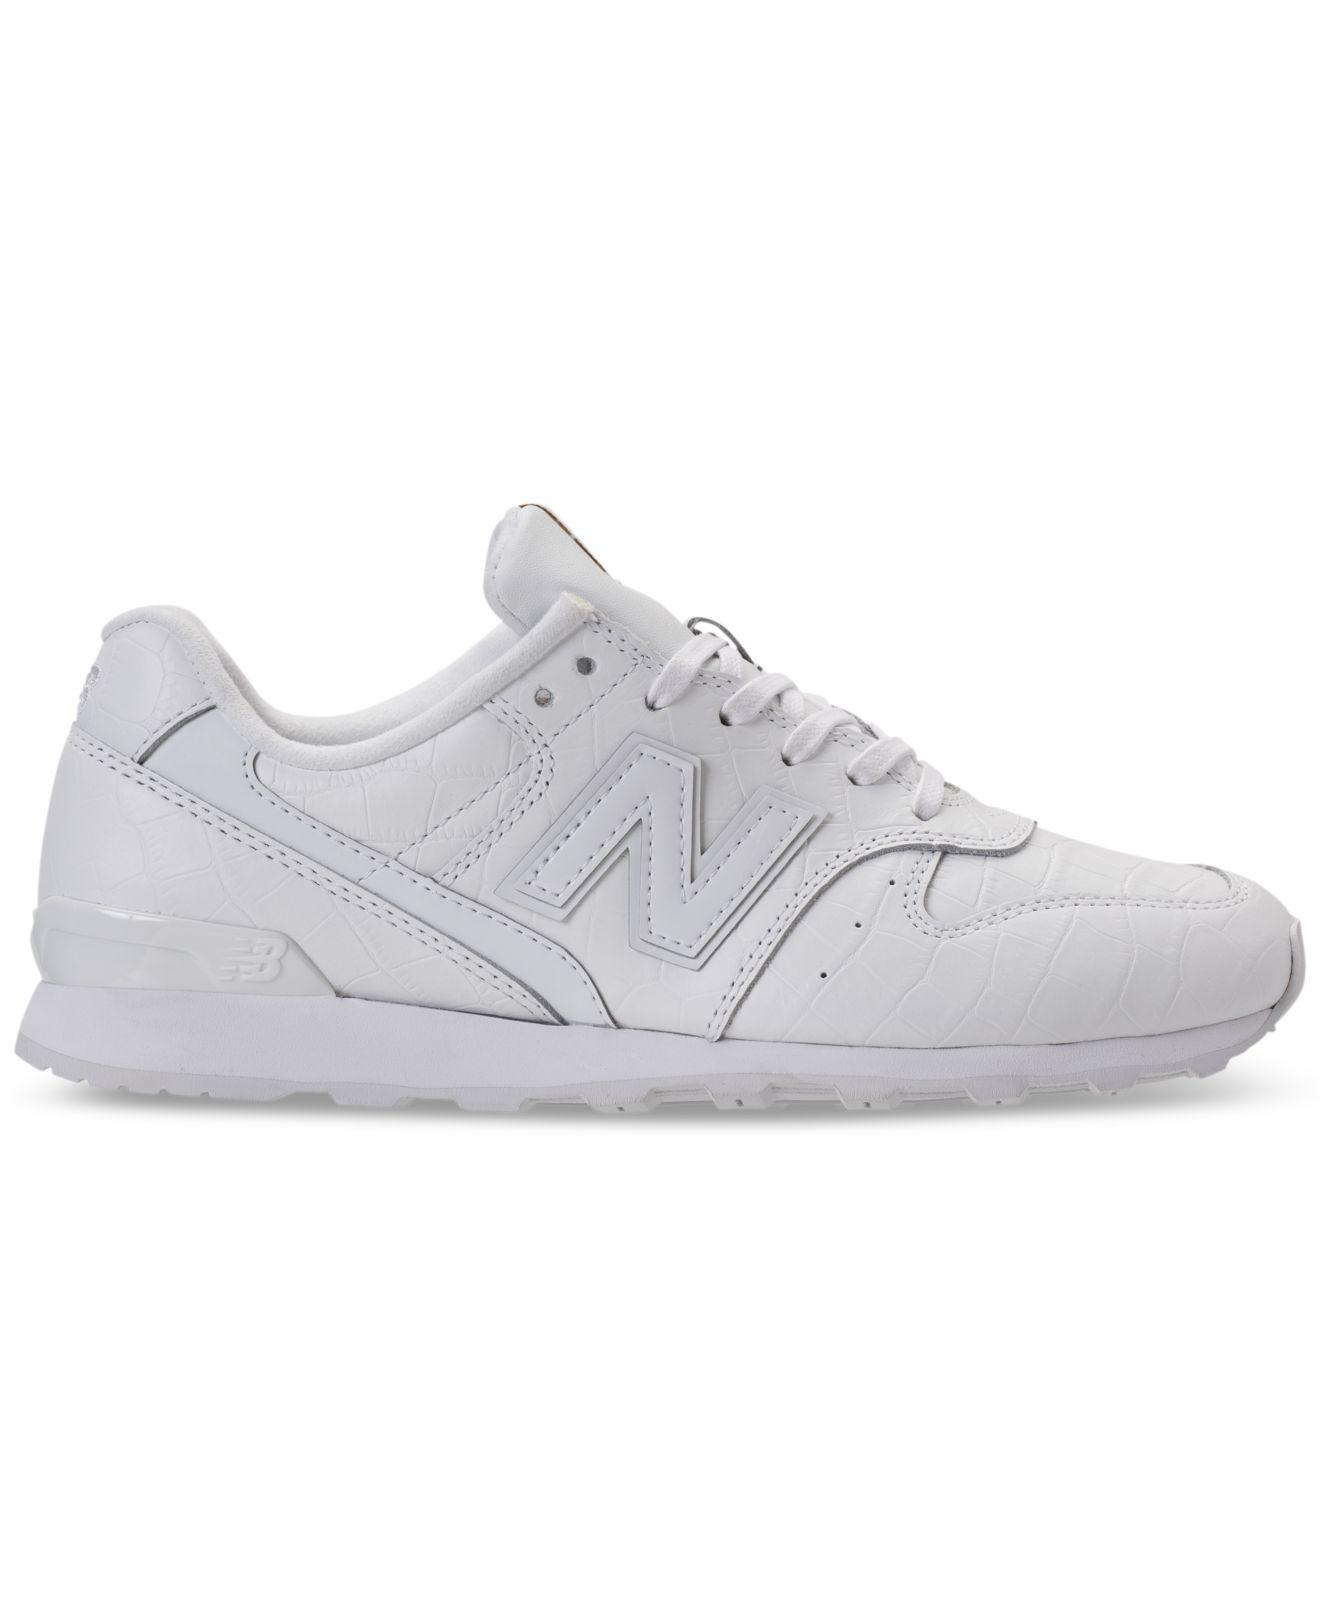 21a9facdeb6e9 New Balance Women's 696 Leather Casual Sneakers From Finish Line in ...